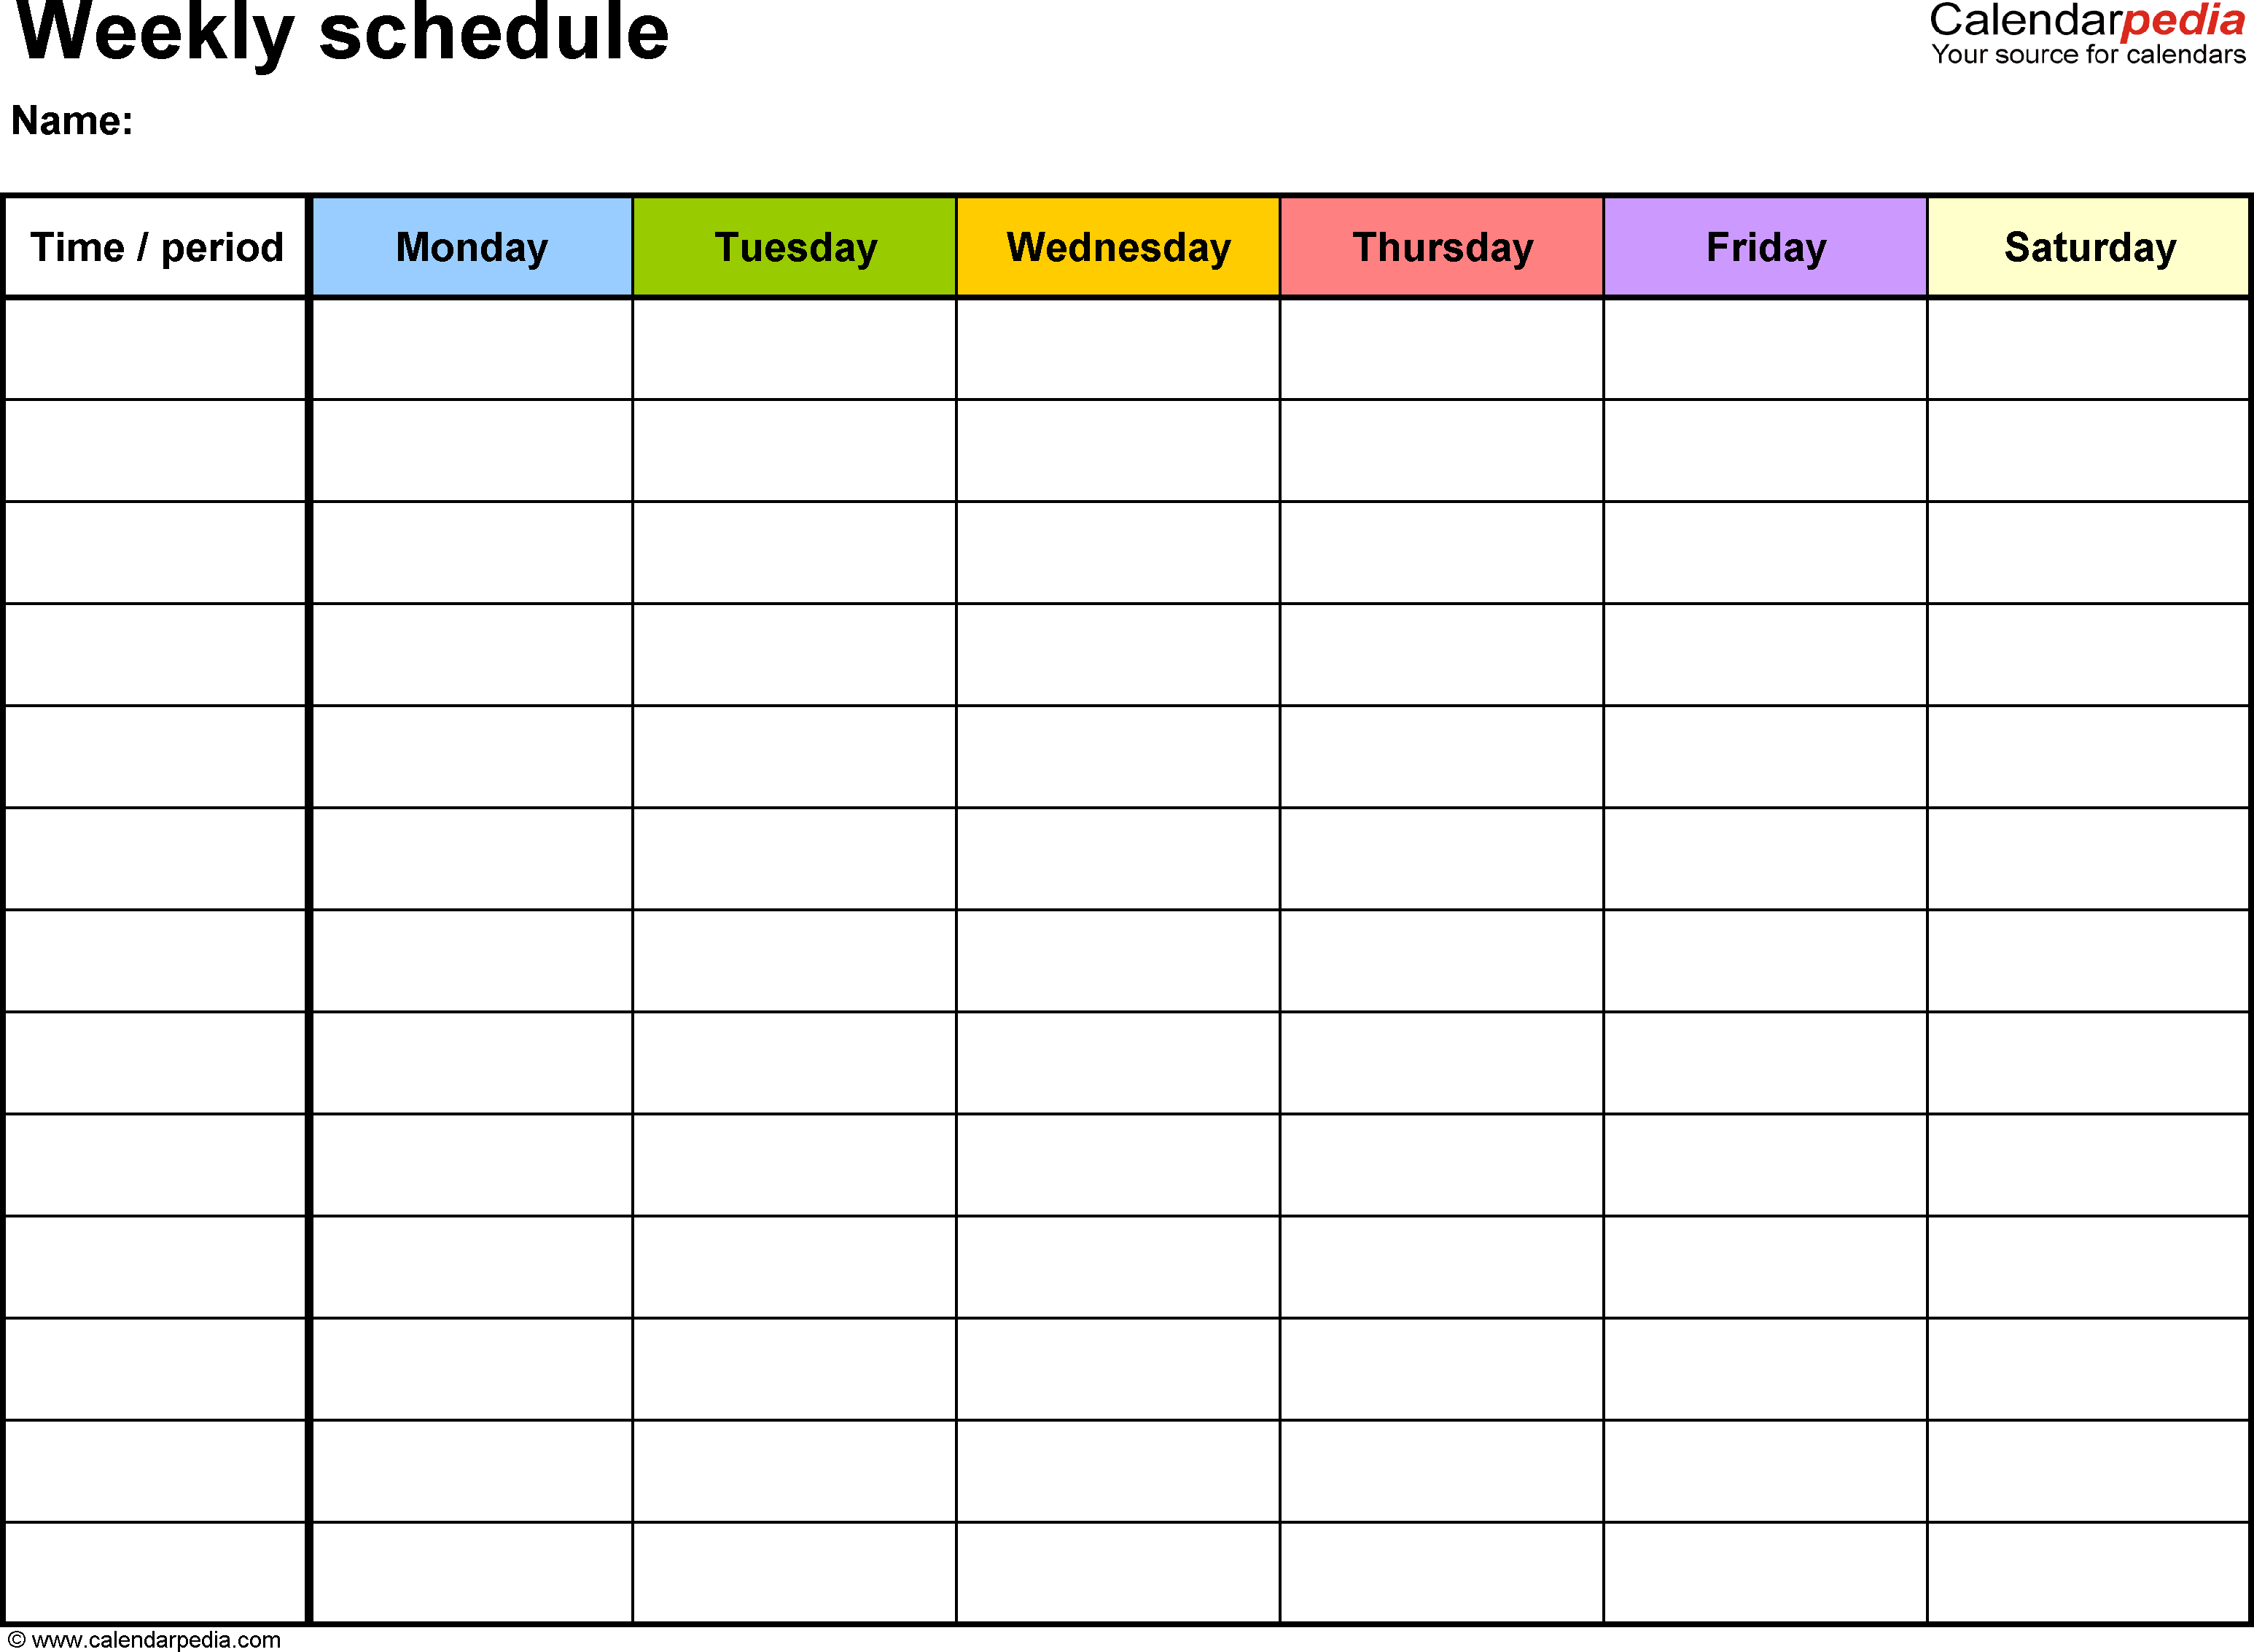 Free Weekly Schedule Templates For Word - 18 Templates for 7 Day Week Blank Calendar Printable